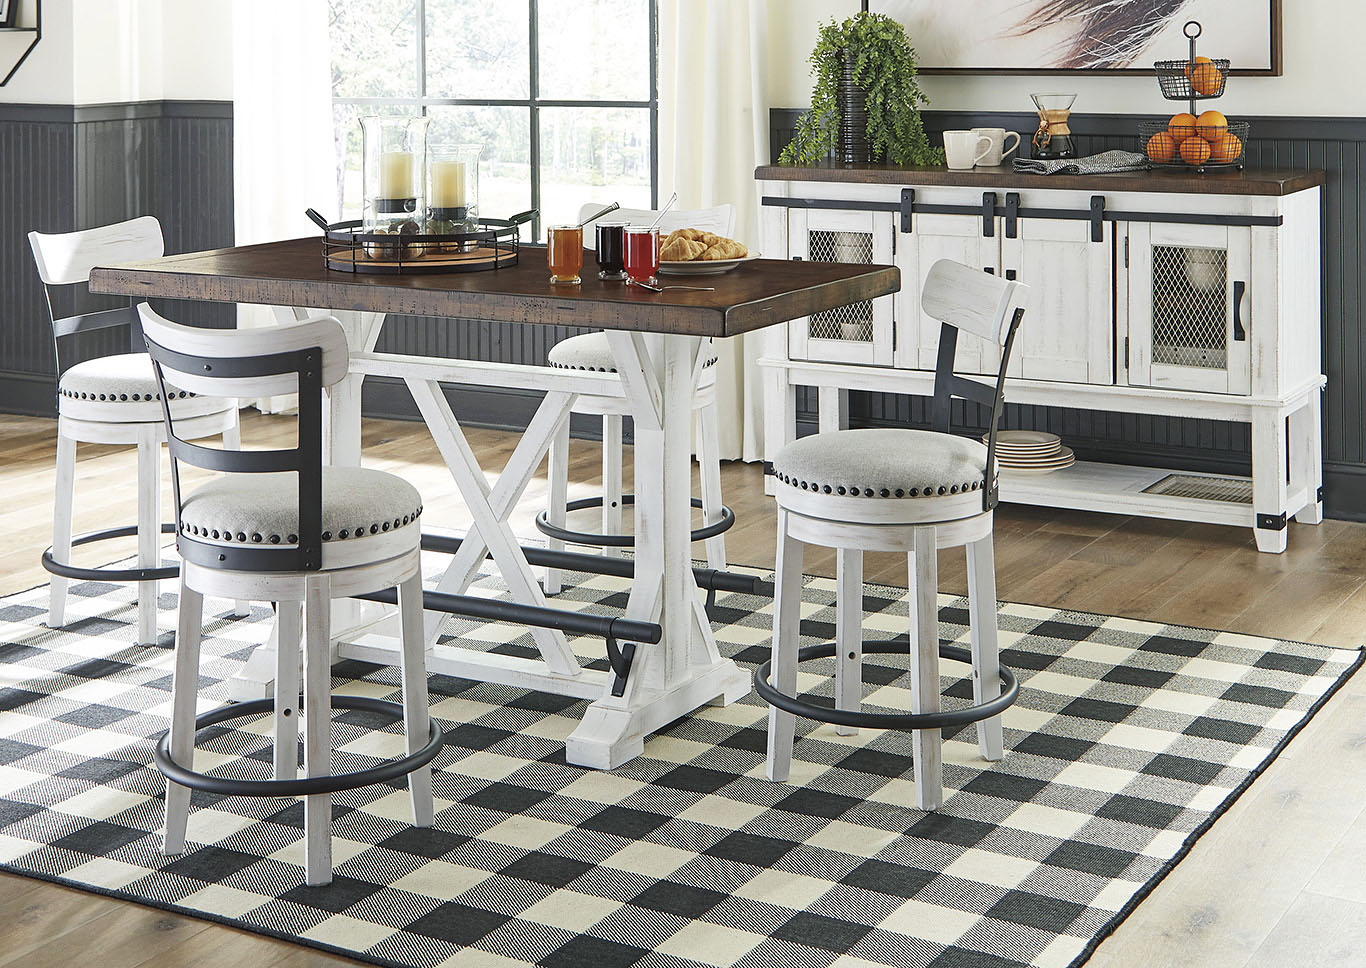 Valebeck Brown Counter Height Dining Table w/4 Backed White Barstools,Signature Design By Ashley